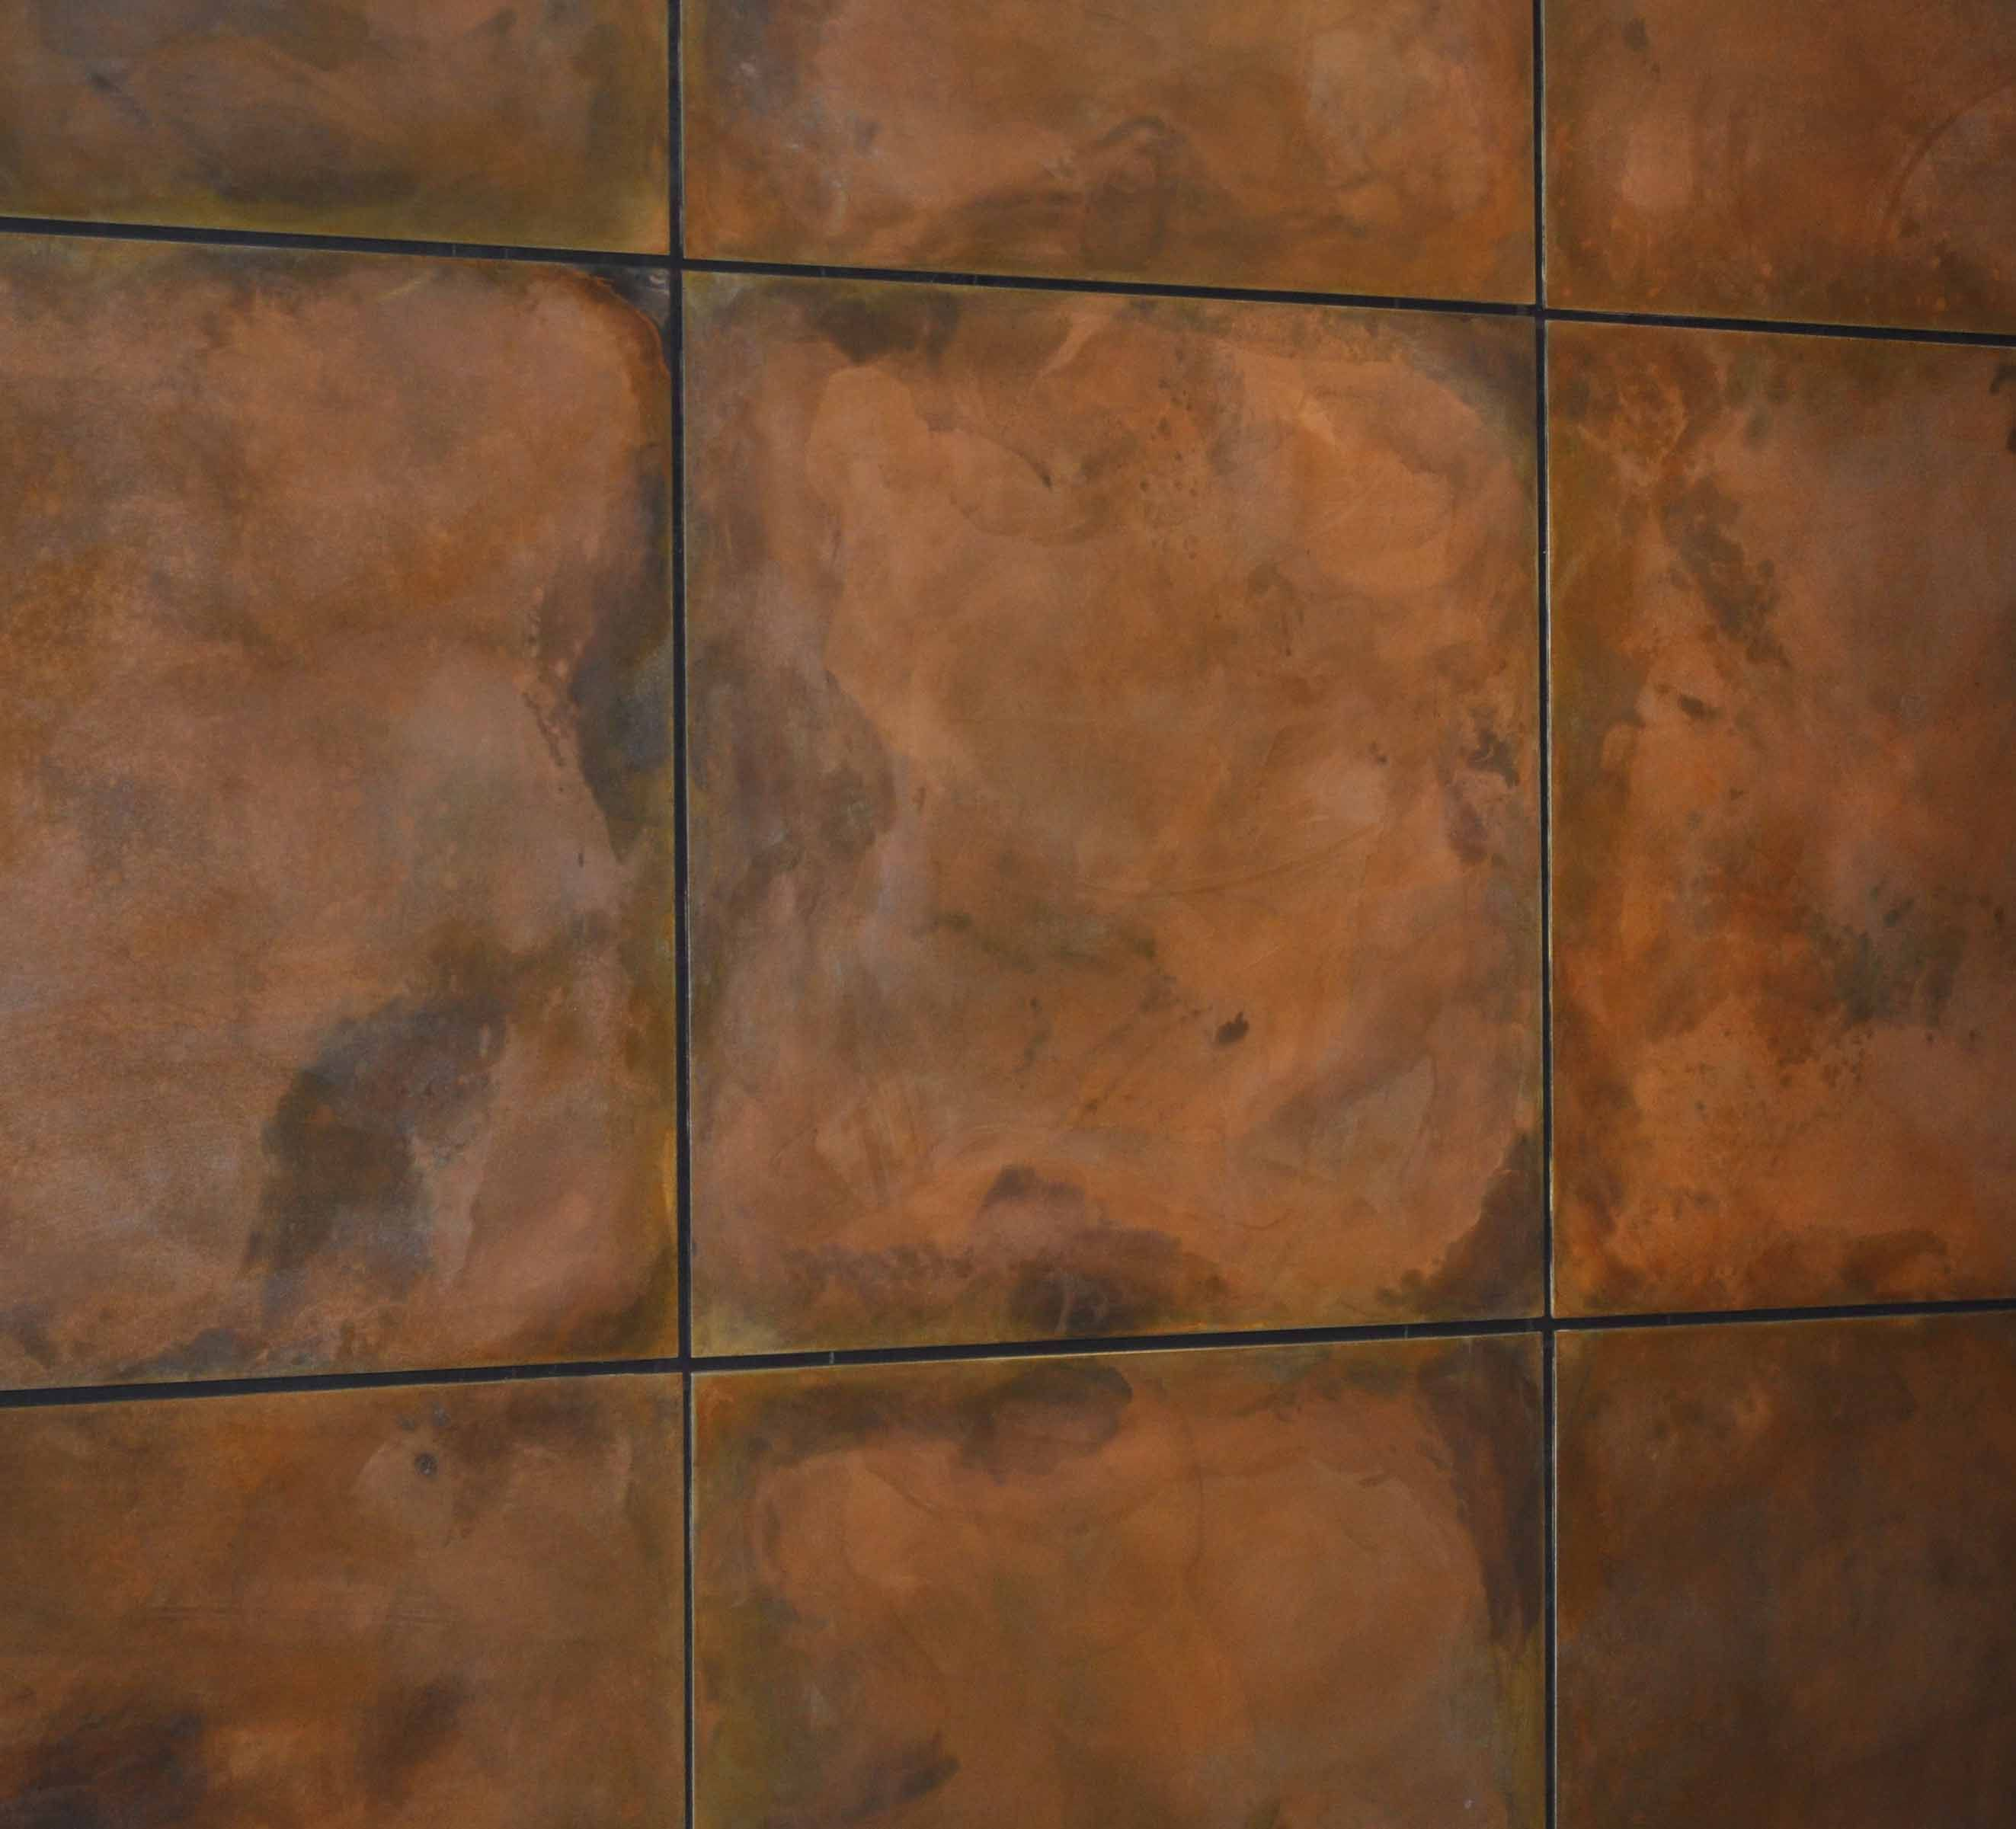 Burnt Copper Z Clipped Floating Steel Wall Panels Brandner Design Steel Wall Exterior Wall Panels Copper Wall